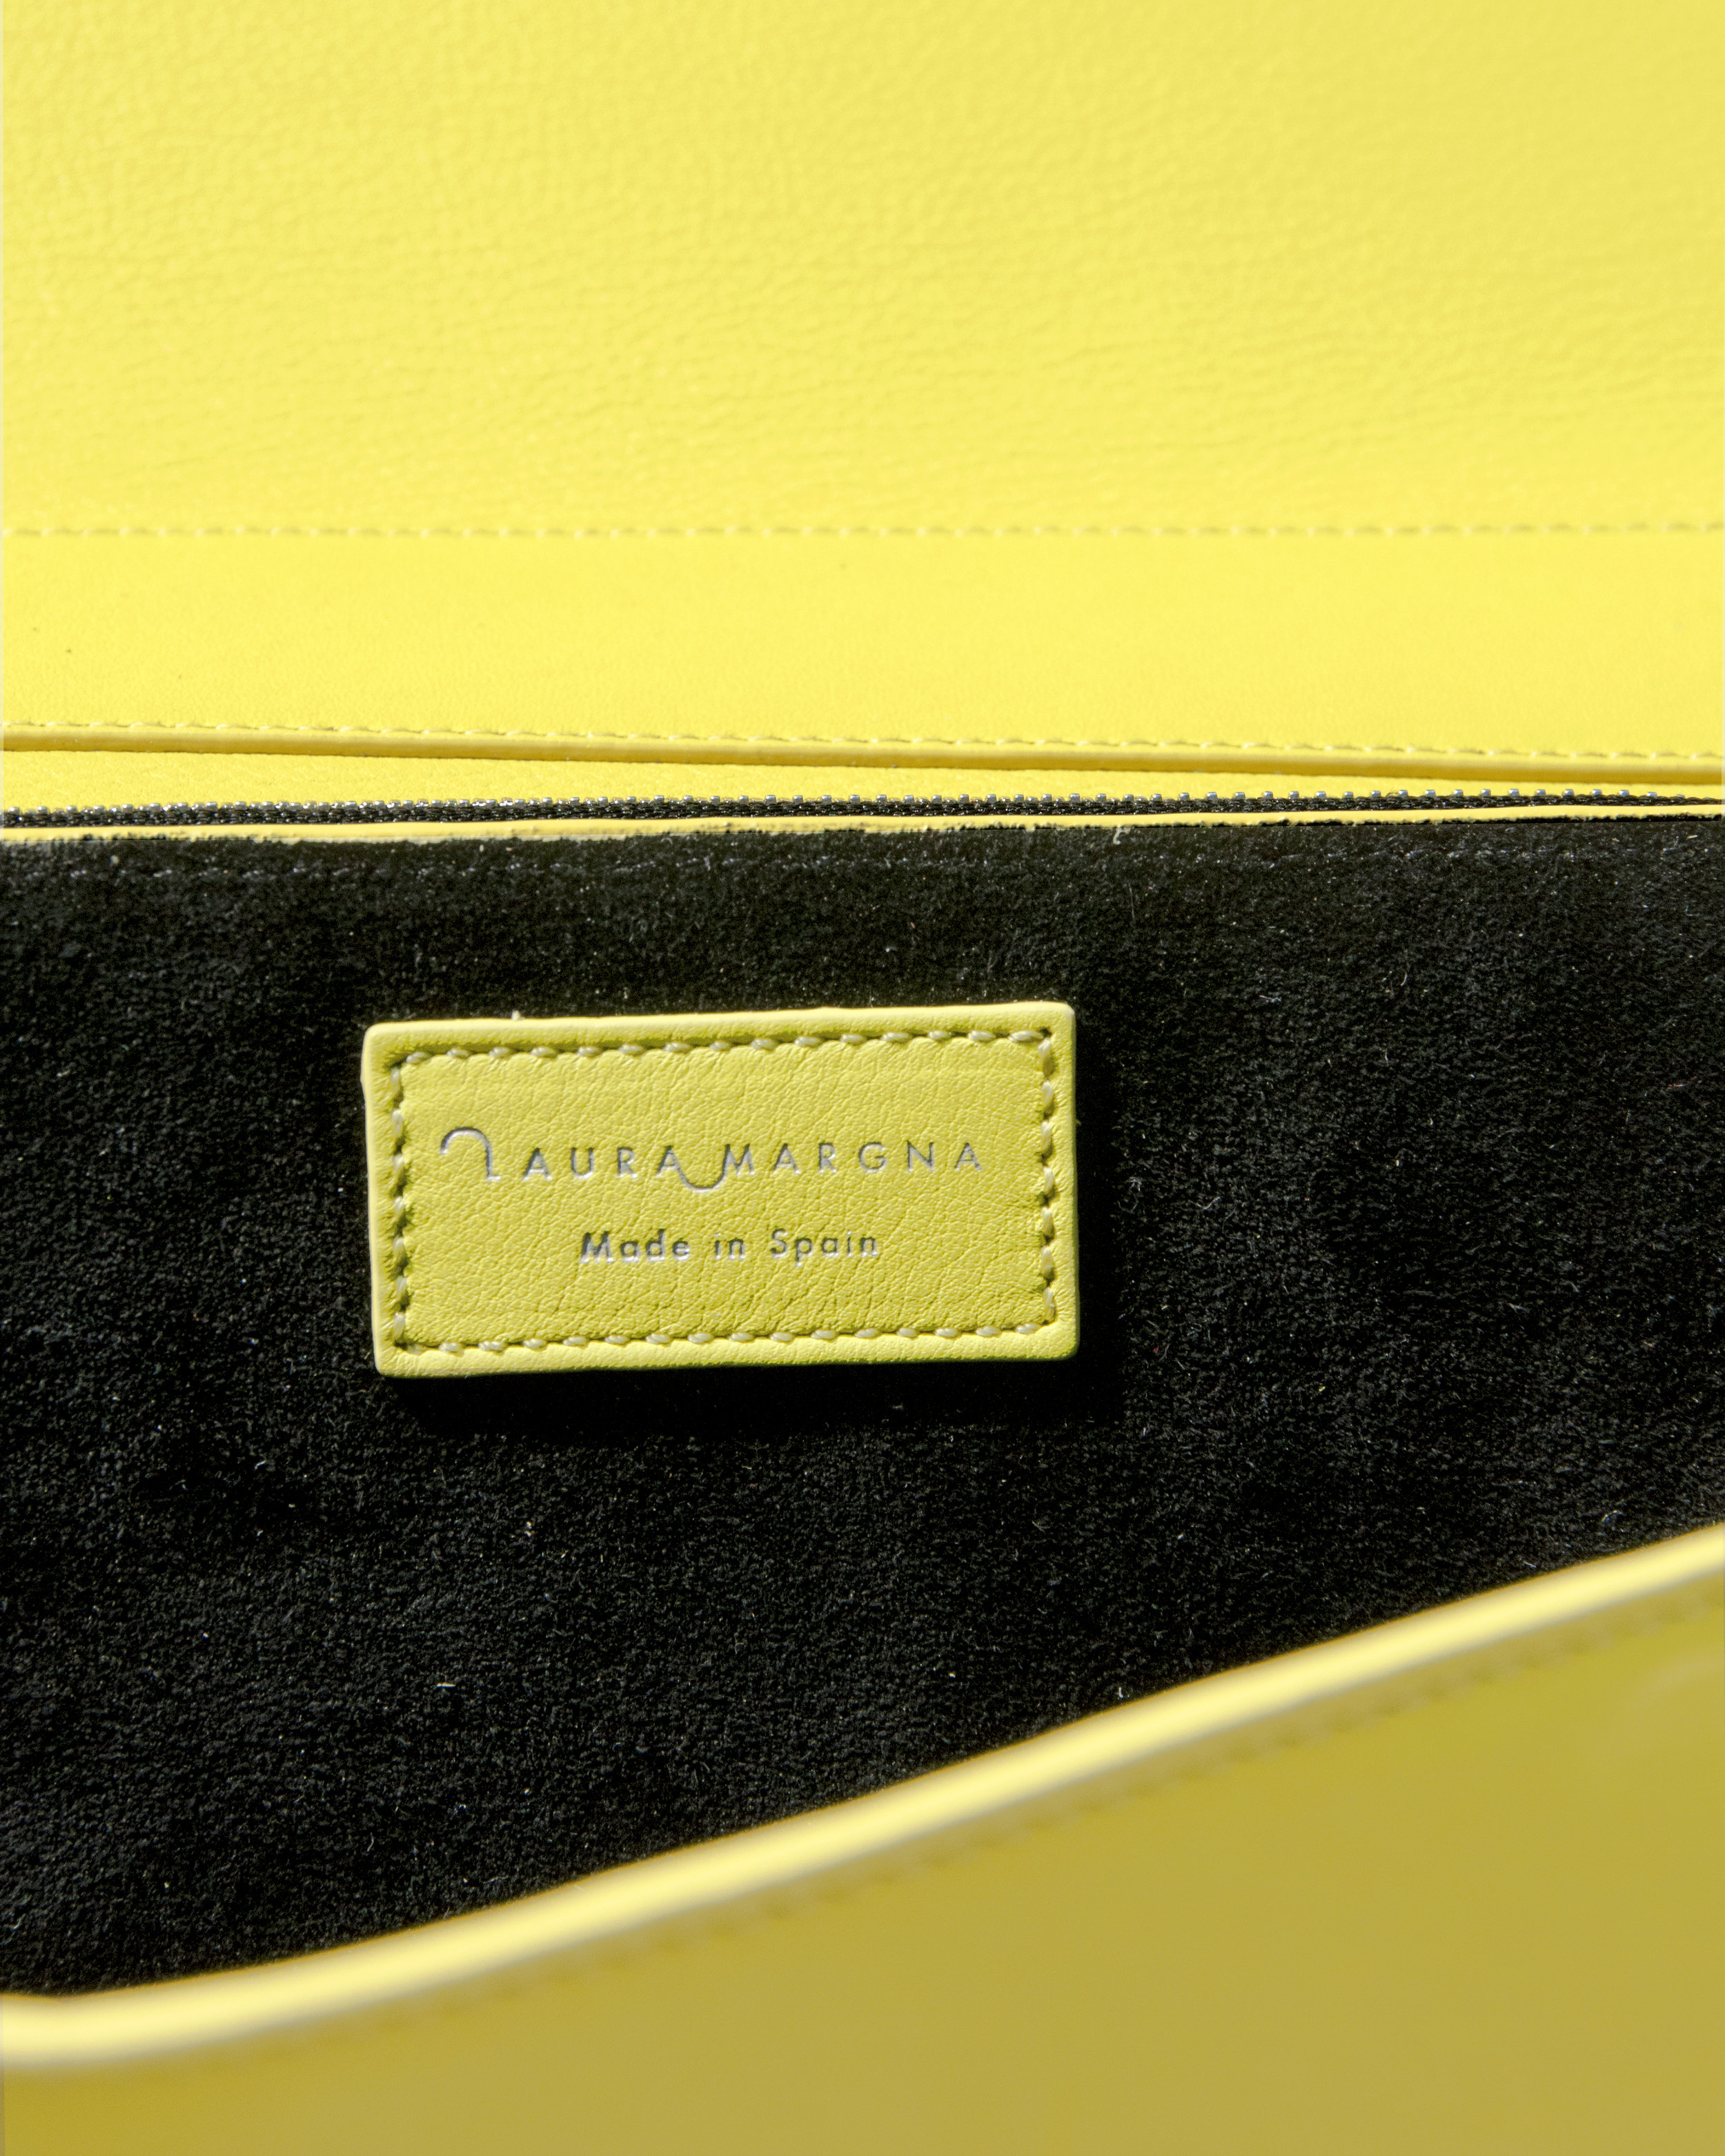 PROUDLY MADE IN SPAIN - • Quality ProductsWhile all of our designs are imagined in our small workshop in Zurich, we are very involved in the production process at our Spanish factory in Ubrique. We proudly stand behind the quality of each and every leather accessory. • Ethical ManufacturingBy producing our pieces in Europe, we ensure that each person, from the sewing team to the packers, is treated fairly.• Job CreationWith each product made, we contribute to local job creation in Ubrique as well as the continuation of traditional leather handiwork, a key pillar of the economy and culture in the village.